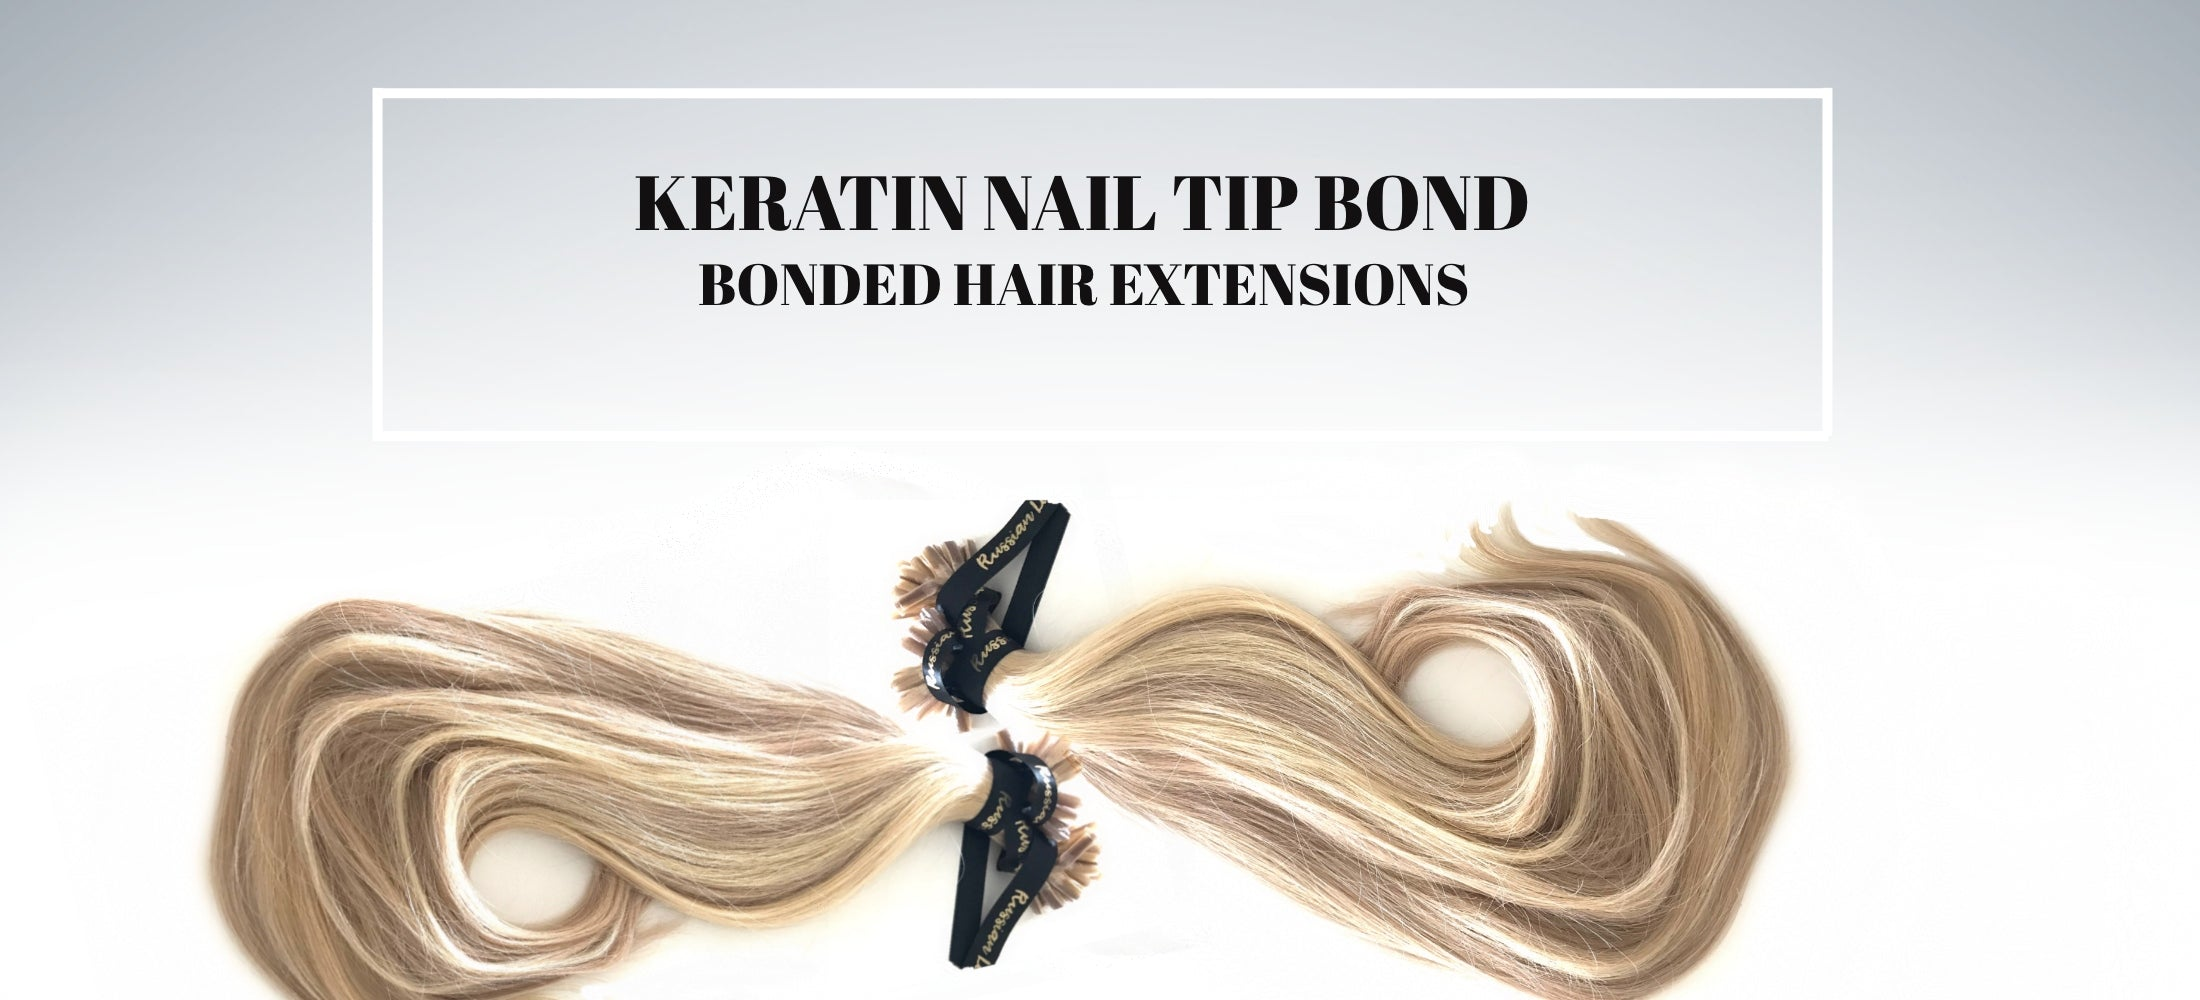 Russian Keratin Nail Tip Bond Hair Extensions